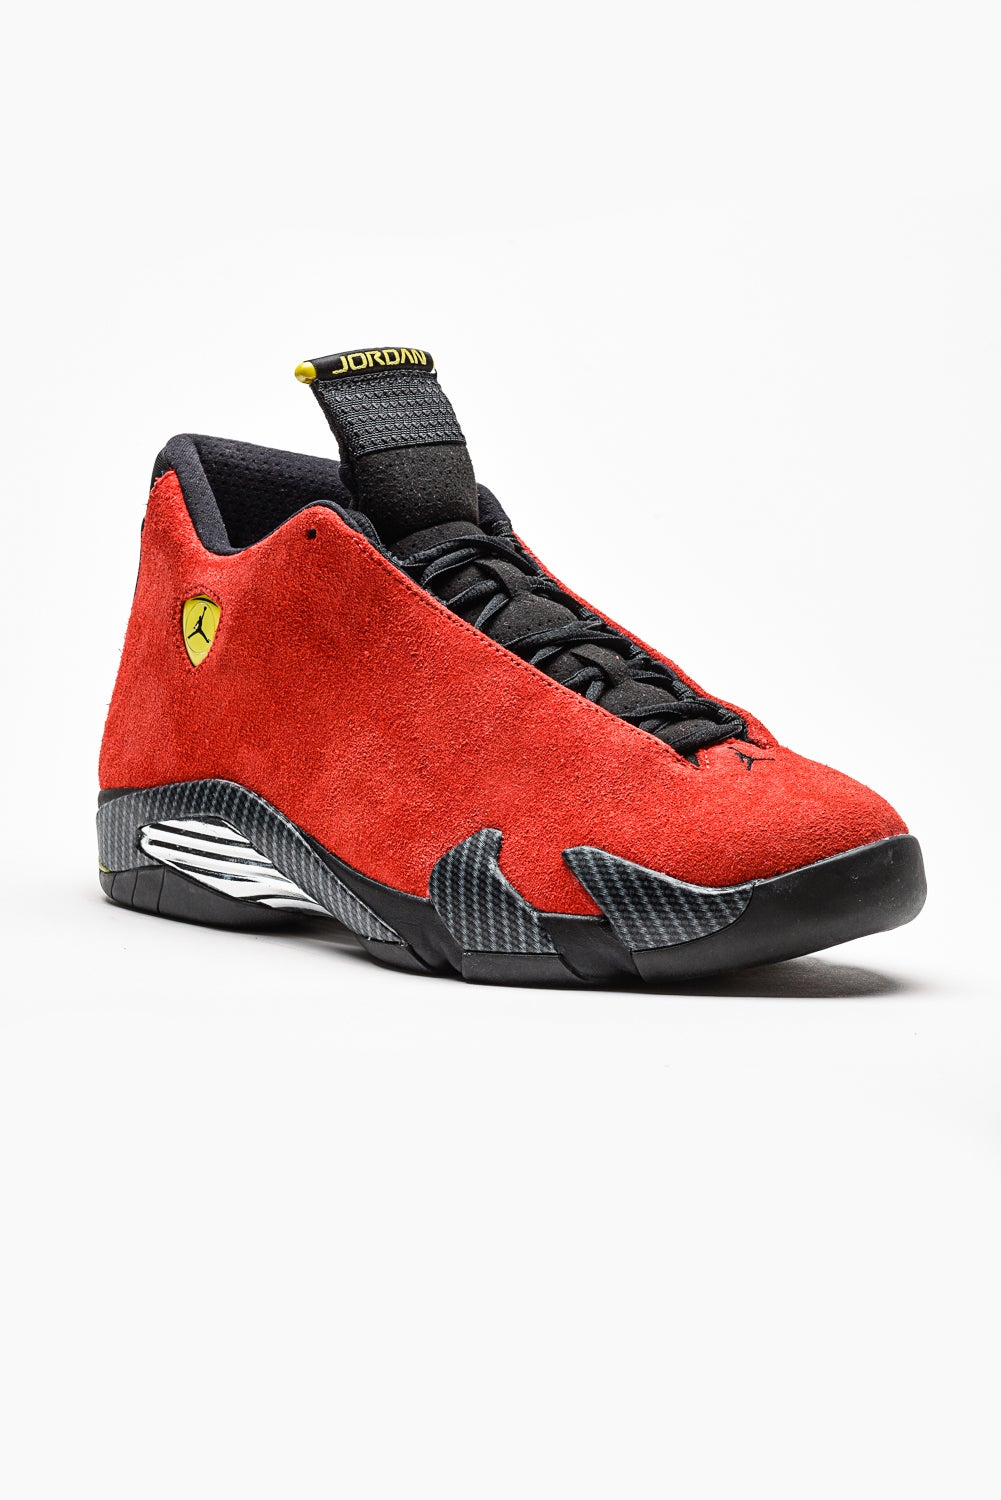 check out aa865 009e5 Image of Air Jordan 14 Retro - Ferrari